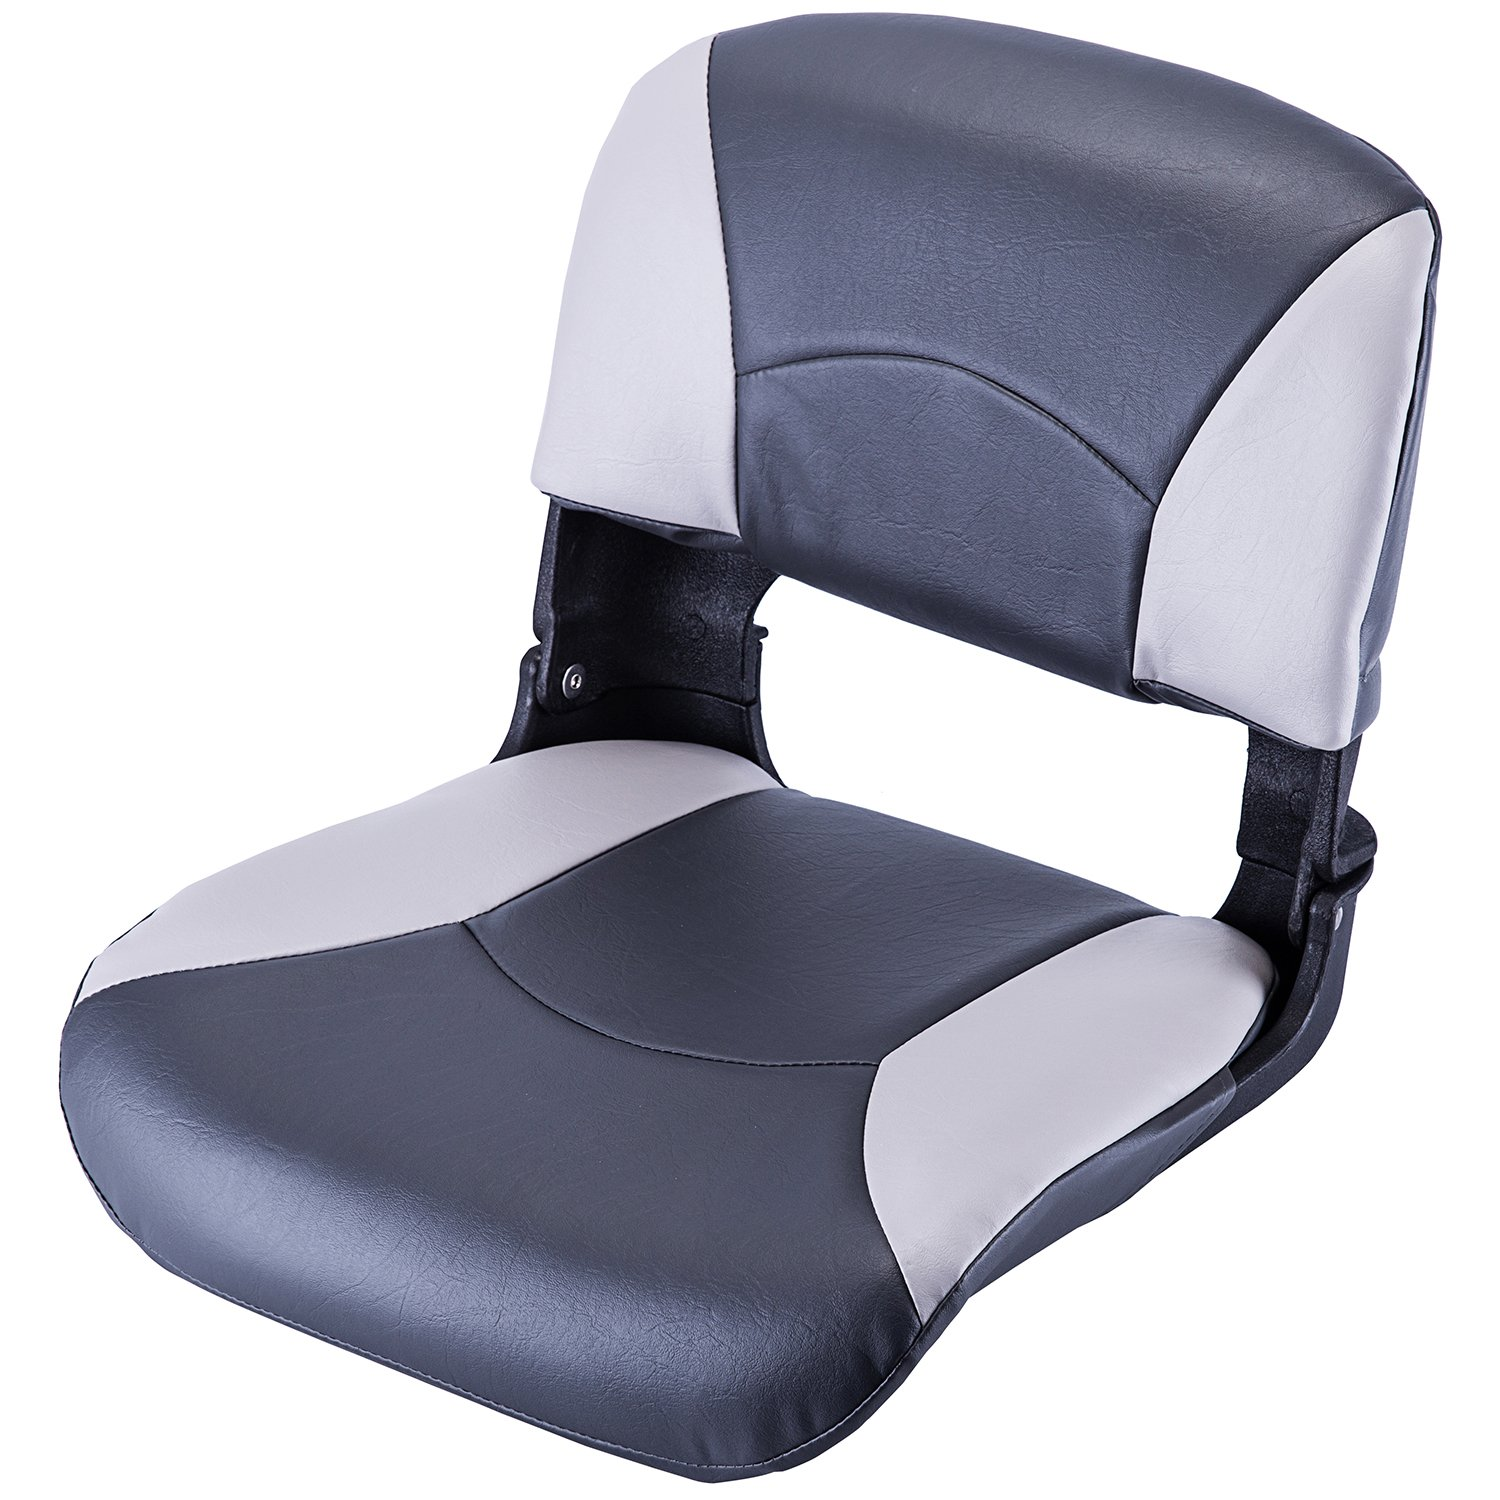 Top 10 Best Boat Seats in 2019 Reviews